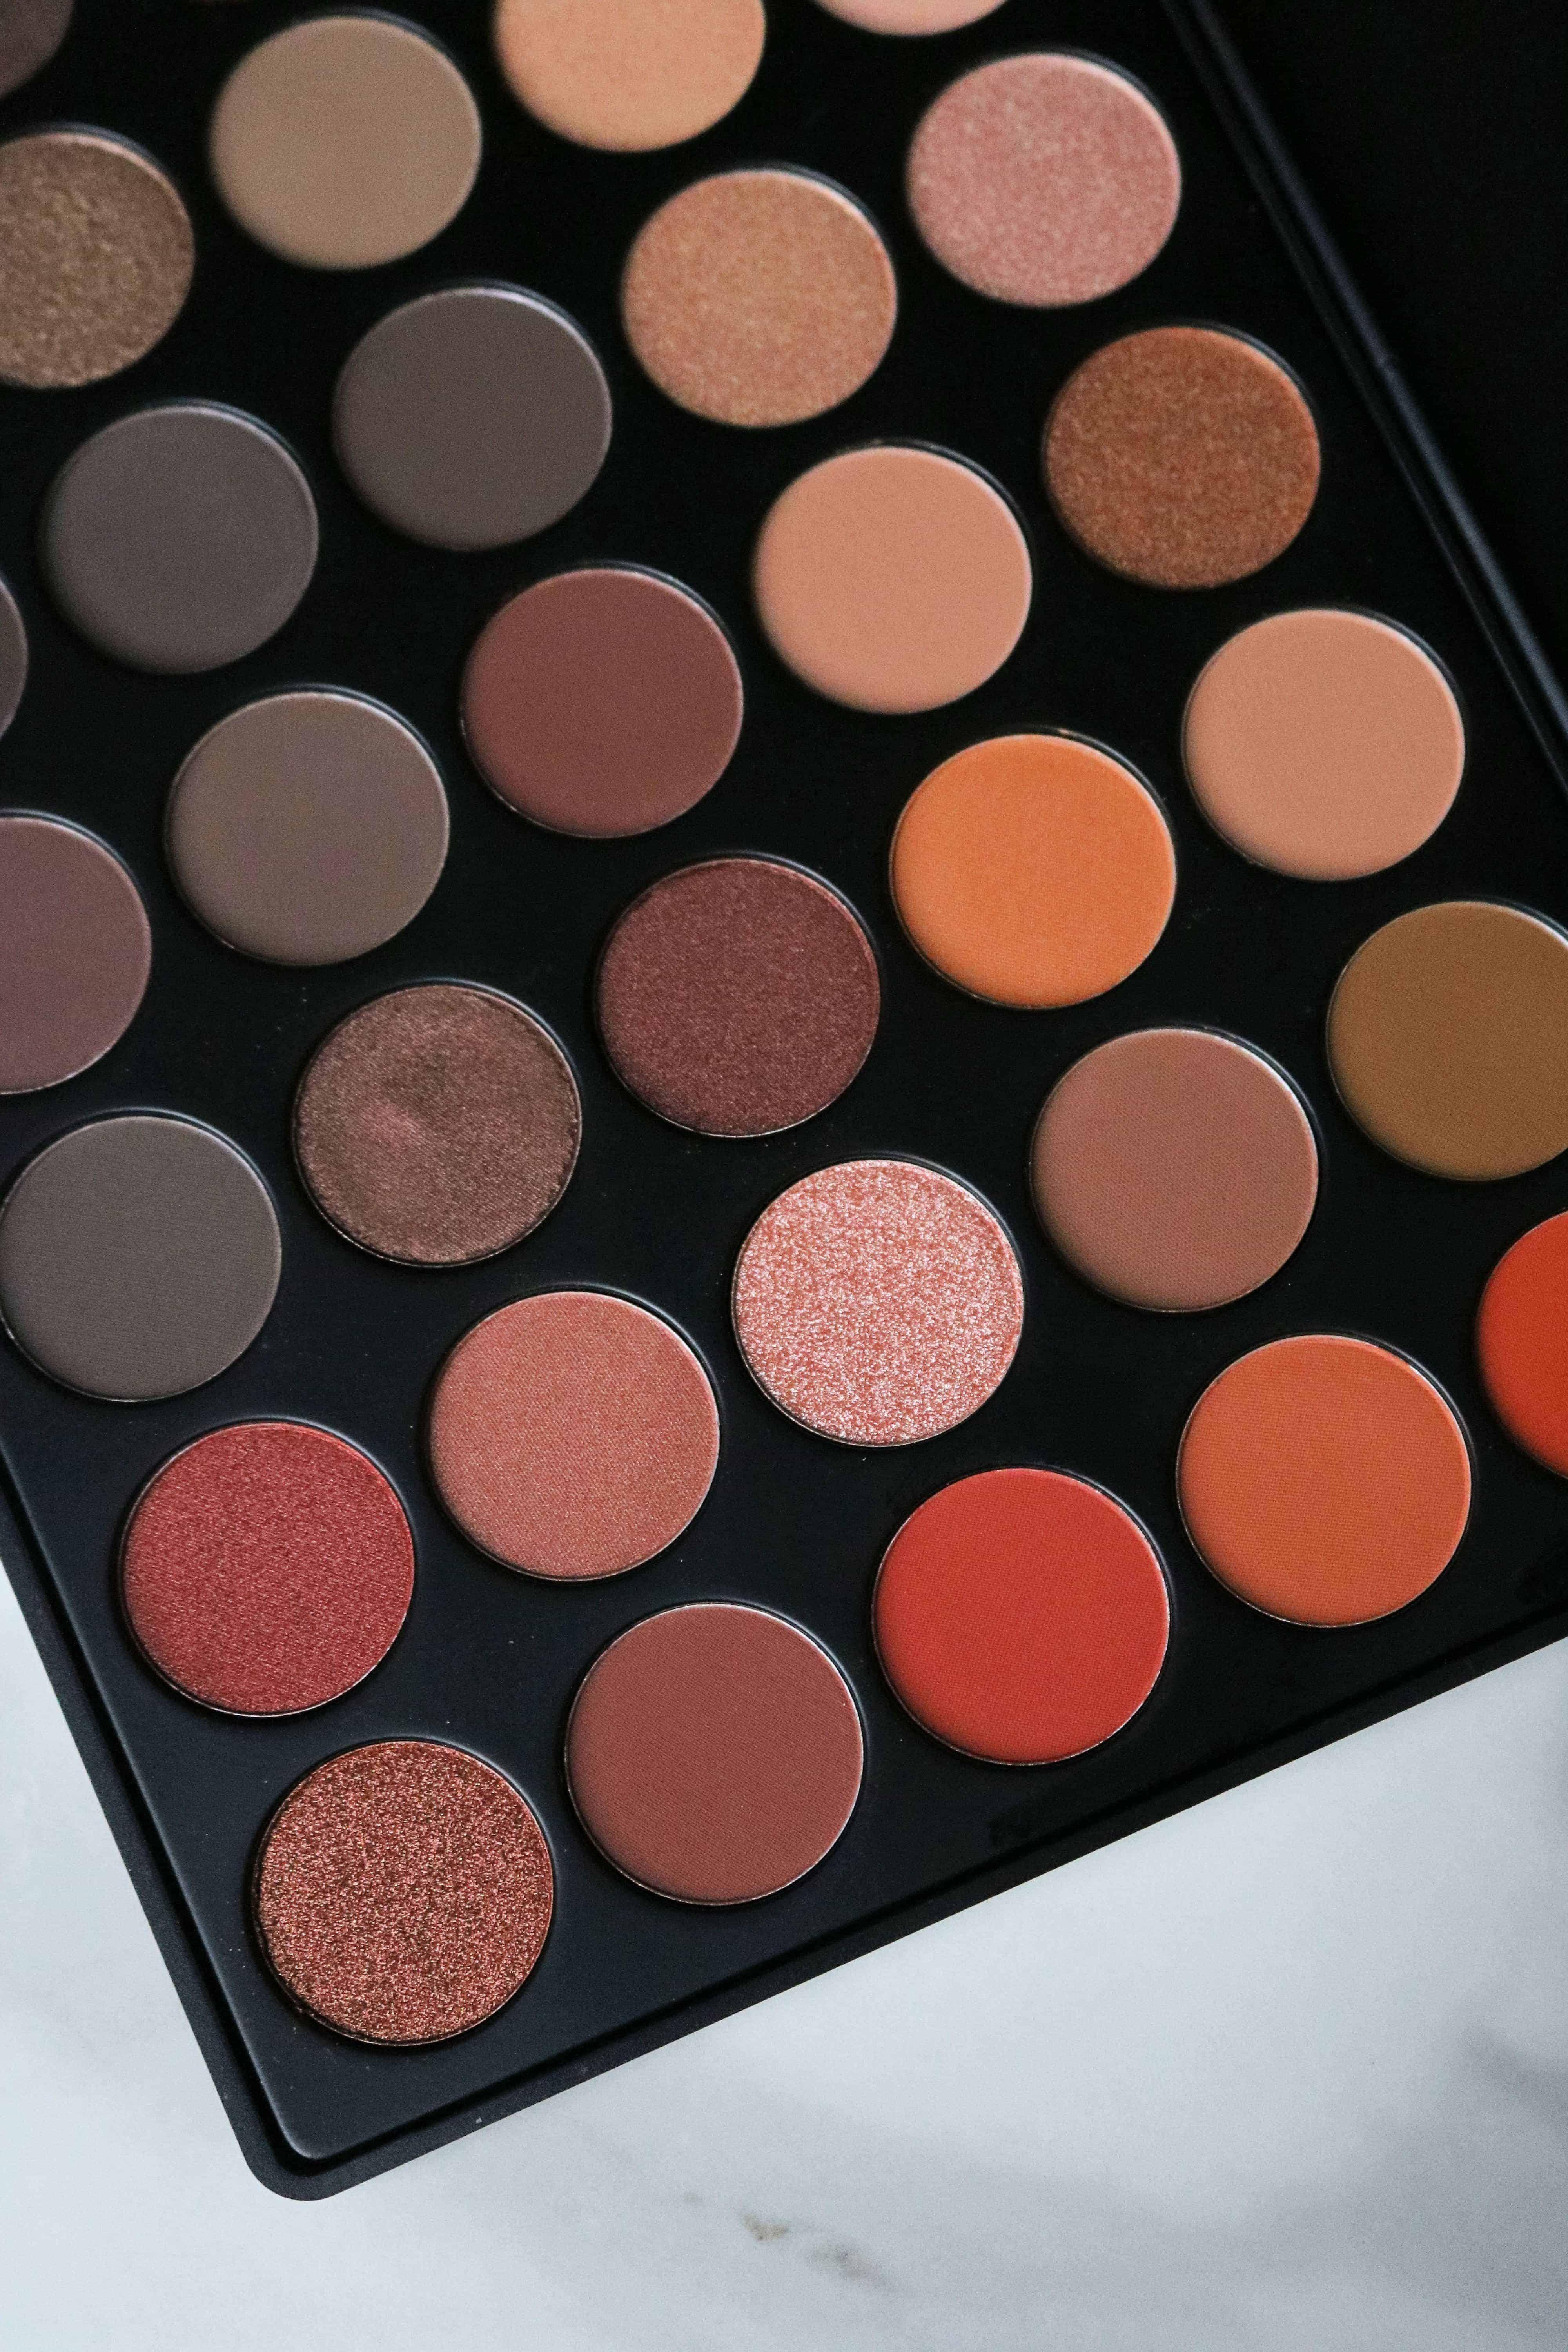 Featuring bold and beautiful colors, the Morphe 350 Nature Glow Palette is the perfect eyeshadow palette for creating gorgeous looks for fall! Check out the full review of one of the best morphe palettes with swatches of all 35 gorgeous shades! #eyeshadowpalette #makeupreview #morphepalette